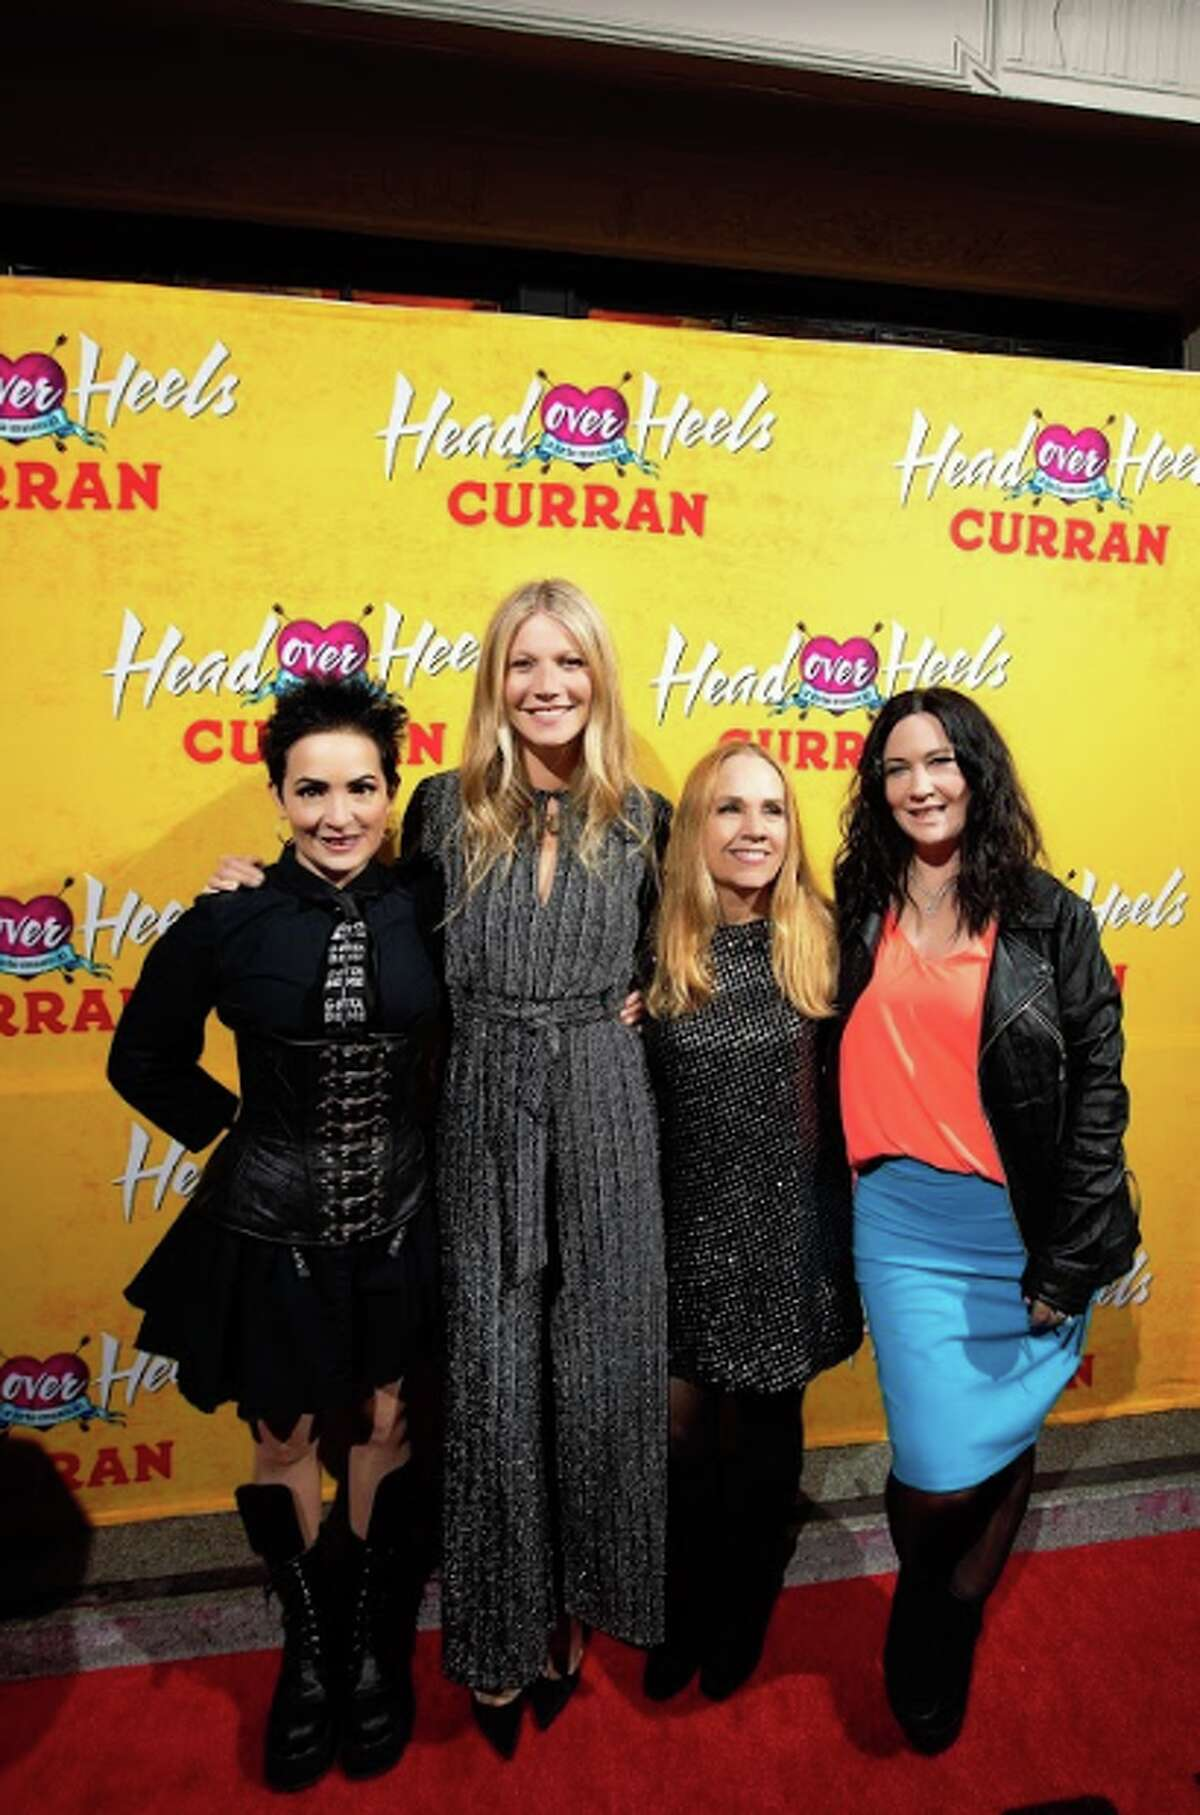 """Gwyneth Paltrow and original members of the Go-Go's, Jane Wiedlin, Charlotte Caffey and Kathy Valentine, attend the premiere of """"Head Over Heels"""" at the Curran Theatre on April 18, 2018 in San Francisco."""